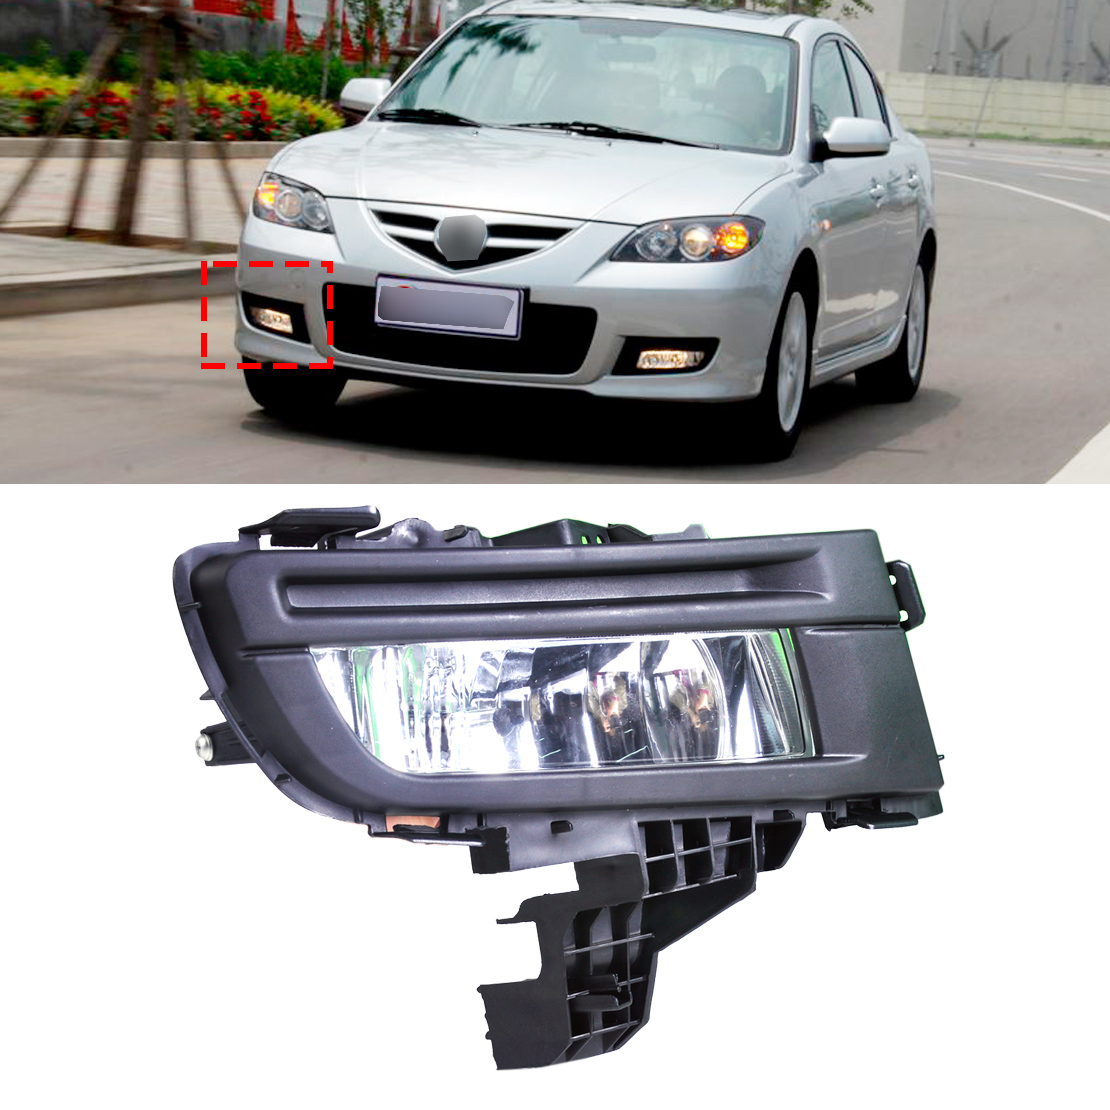 ФОТО beler Car Light Acc 1Pc 12V 51W Front Right Fog Light Lamp 9006 for Mazda 3 2007 2008 2009 Not for Sport GT Hatchback Model